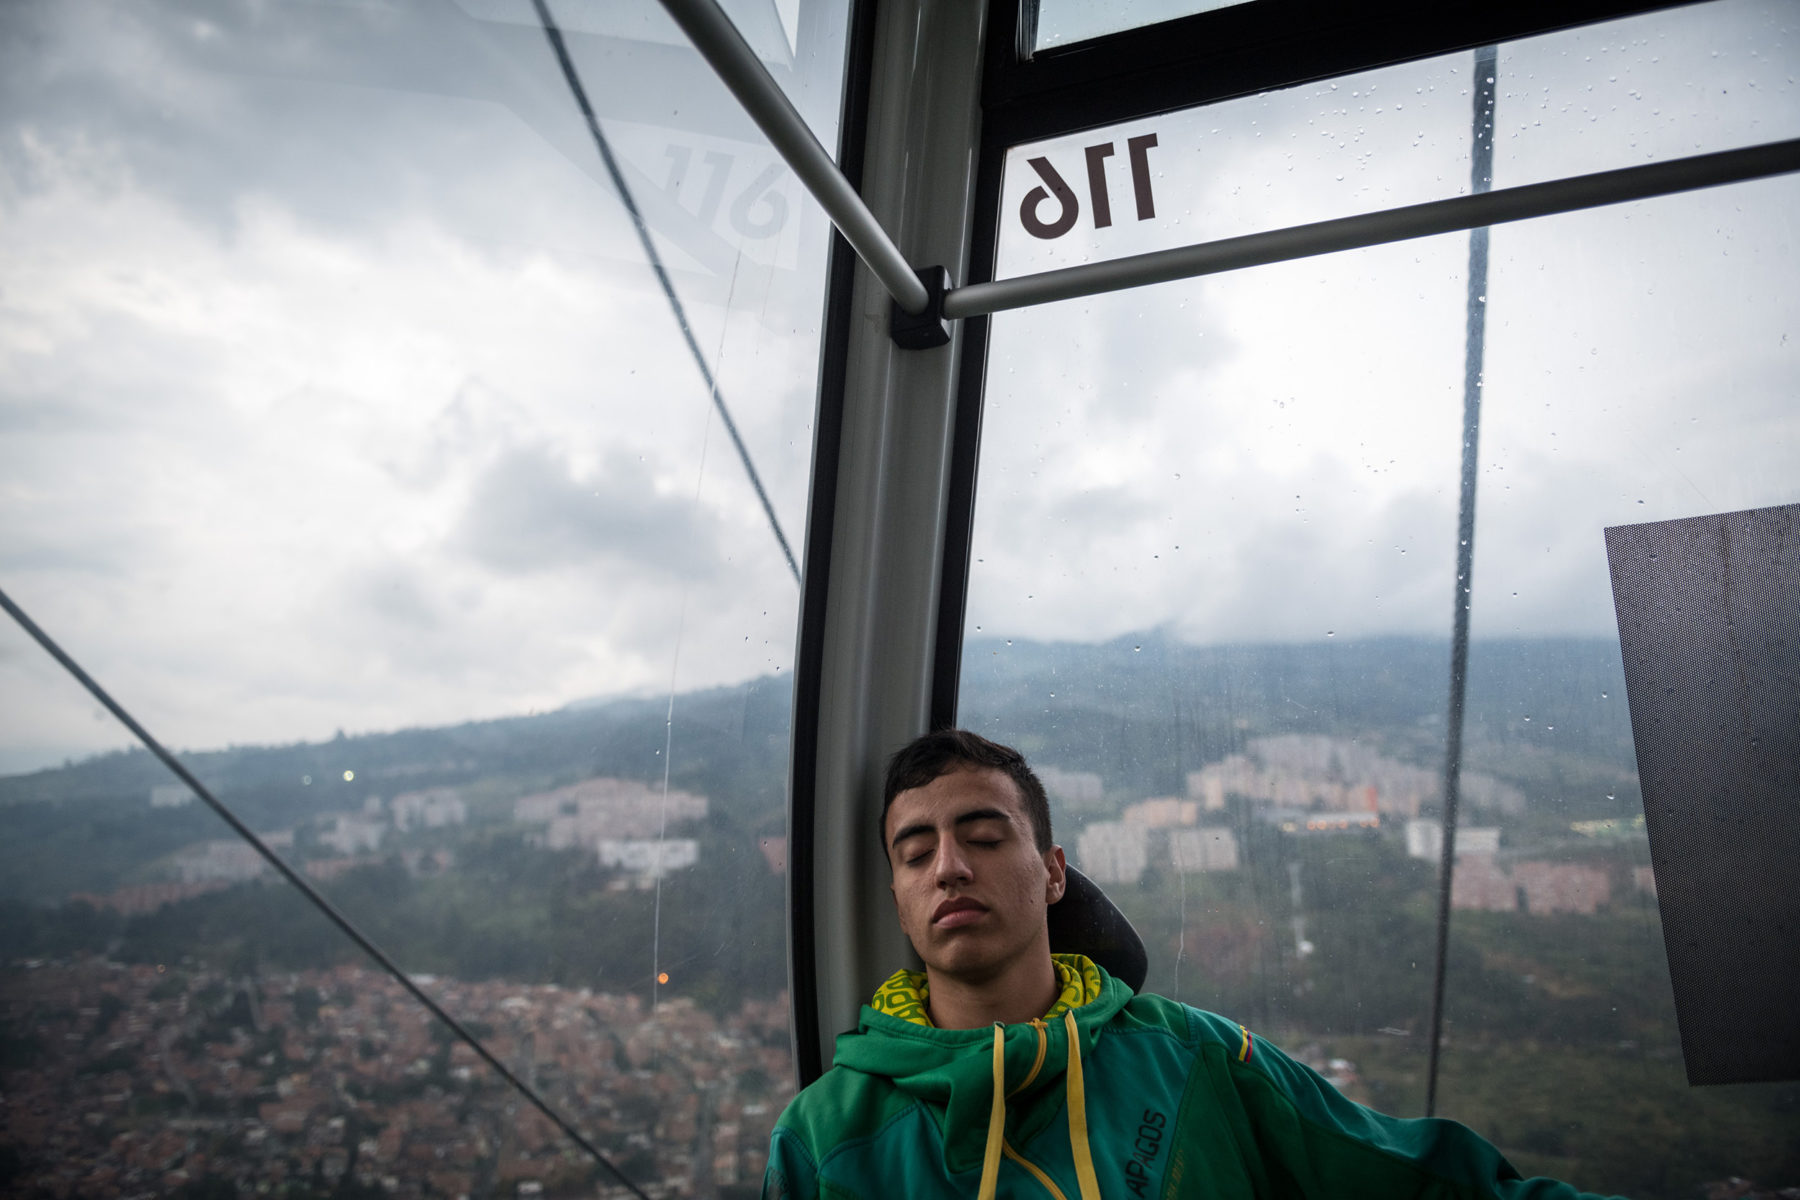 After the long matchday, Daniel takes the cable car home. The city of Medellín has started building cable car lines with the poorest districts in order to shorten the distances to the center. Daniel needs 30 minutes to commute via the cable car and Metro and 50 minutes via direct bus.